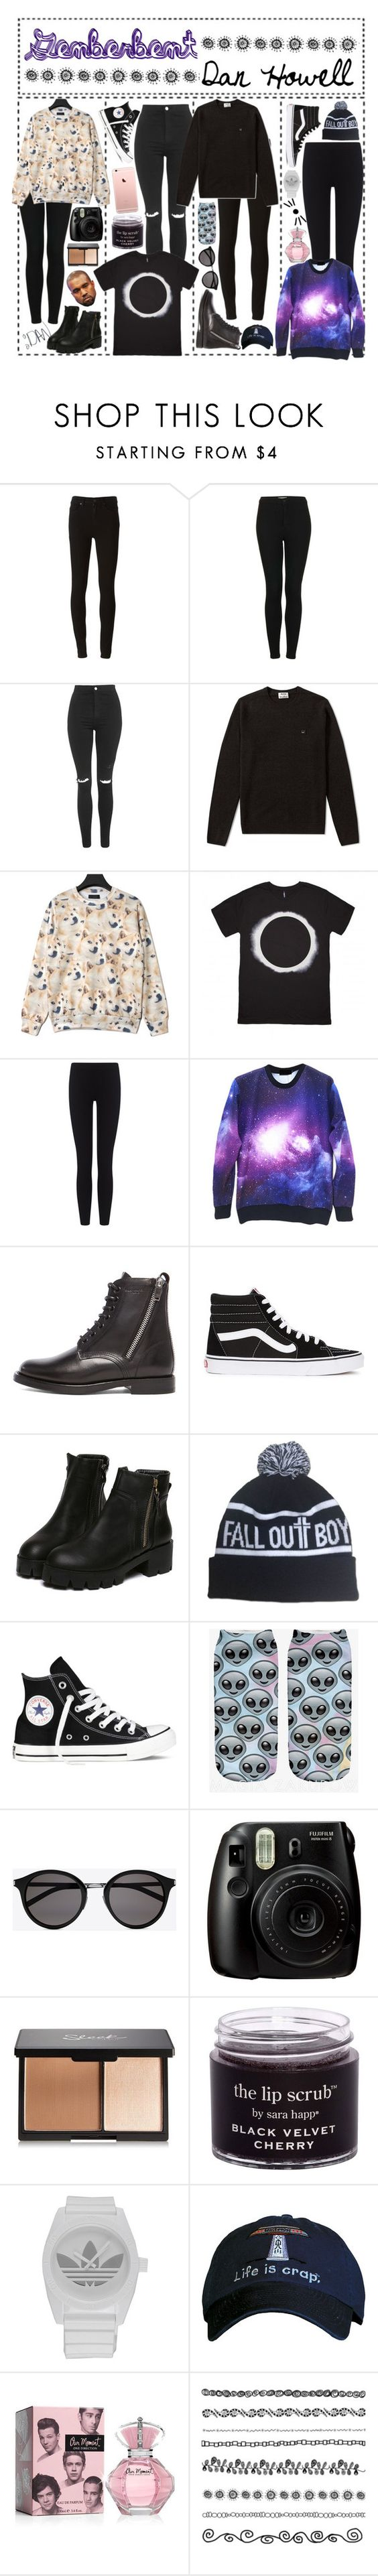 """""""genderbent - DAN HOWELL"""" by angietbh ❤ liked on Polyvore featuring Paige Denim, Topshop, Acne Studios, James Perse, Yves Saint Laurent, Vans, Converse, adidas, women's clothing and women"""